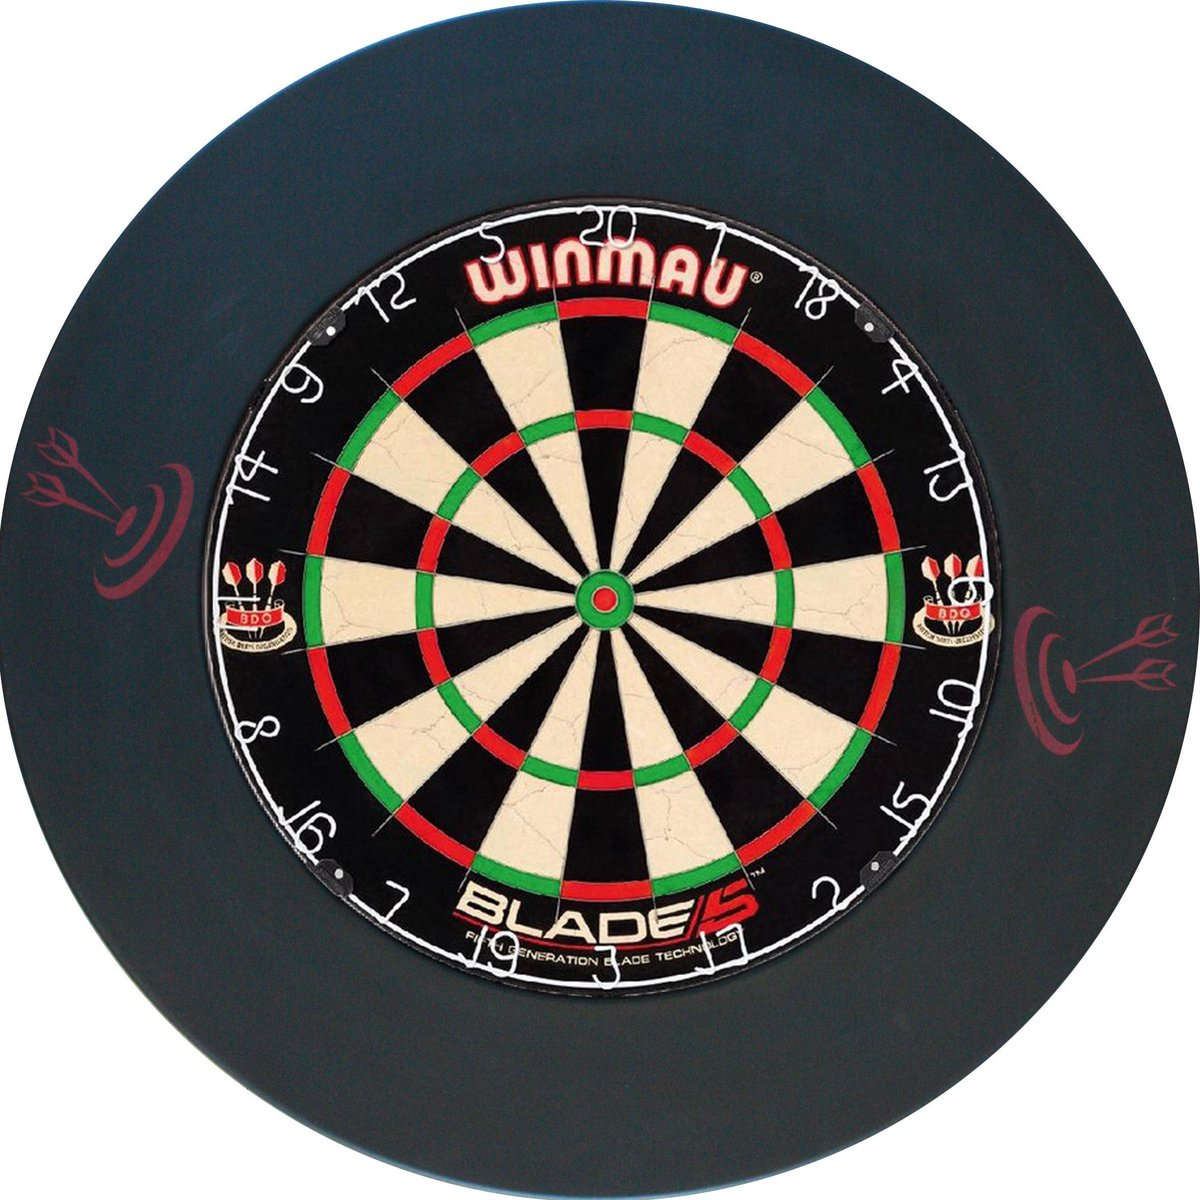 Winmau blade 5 incl. rubberen surround ring zwart en ABC darts scorebord